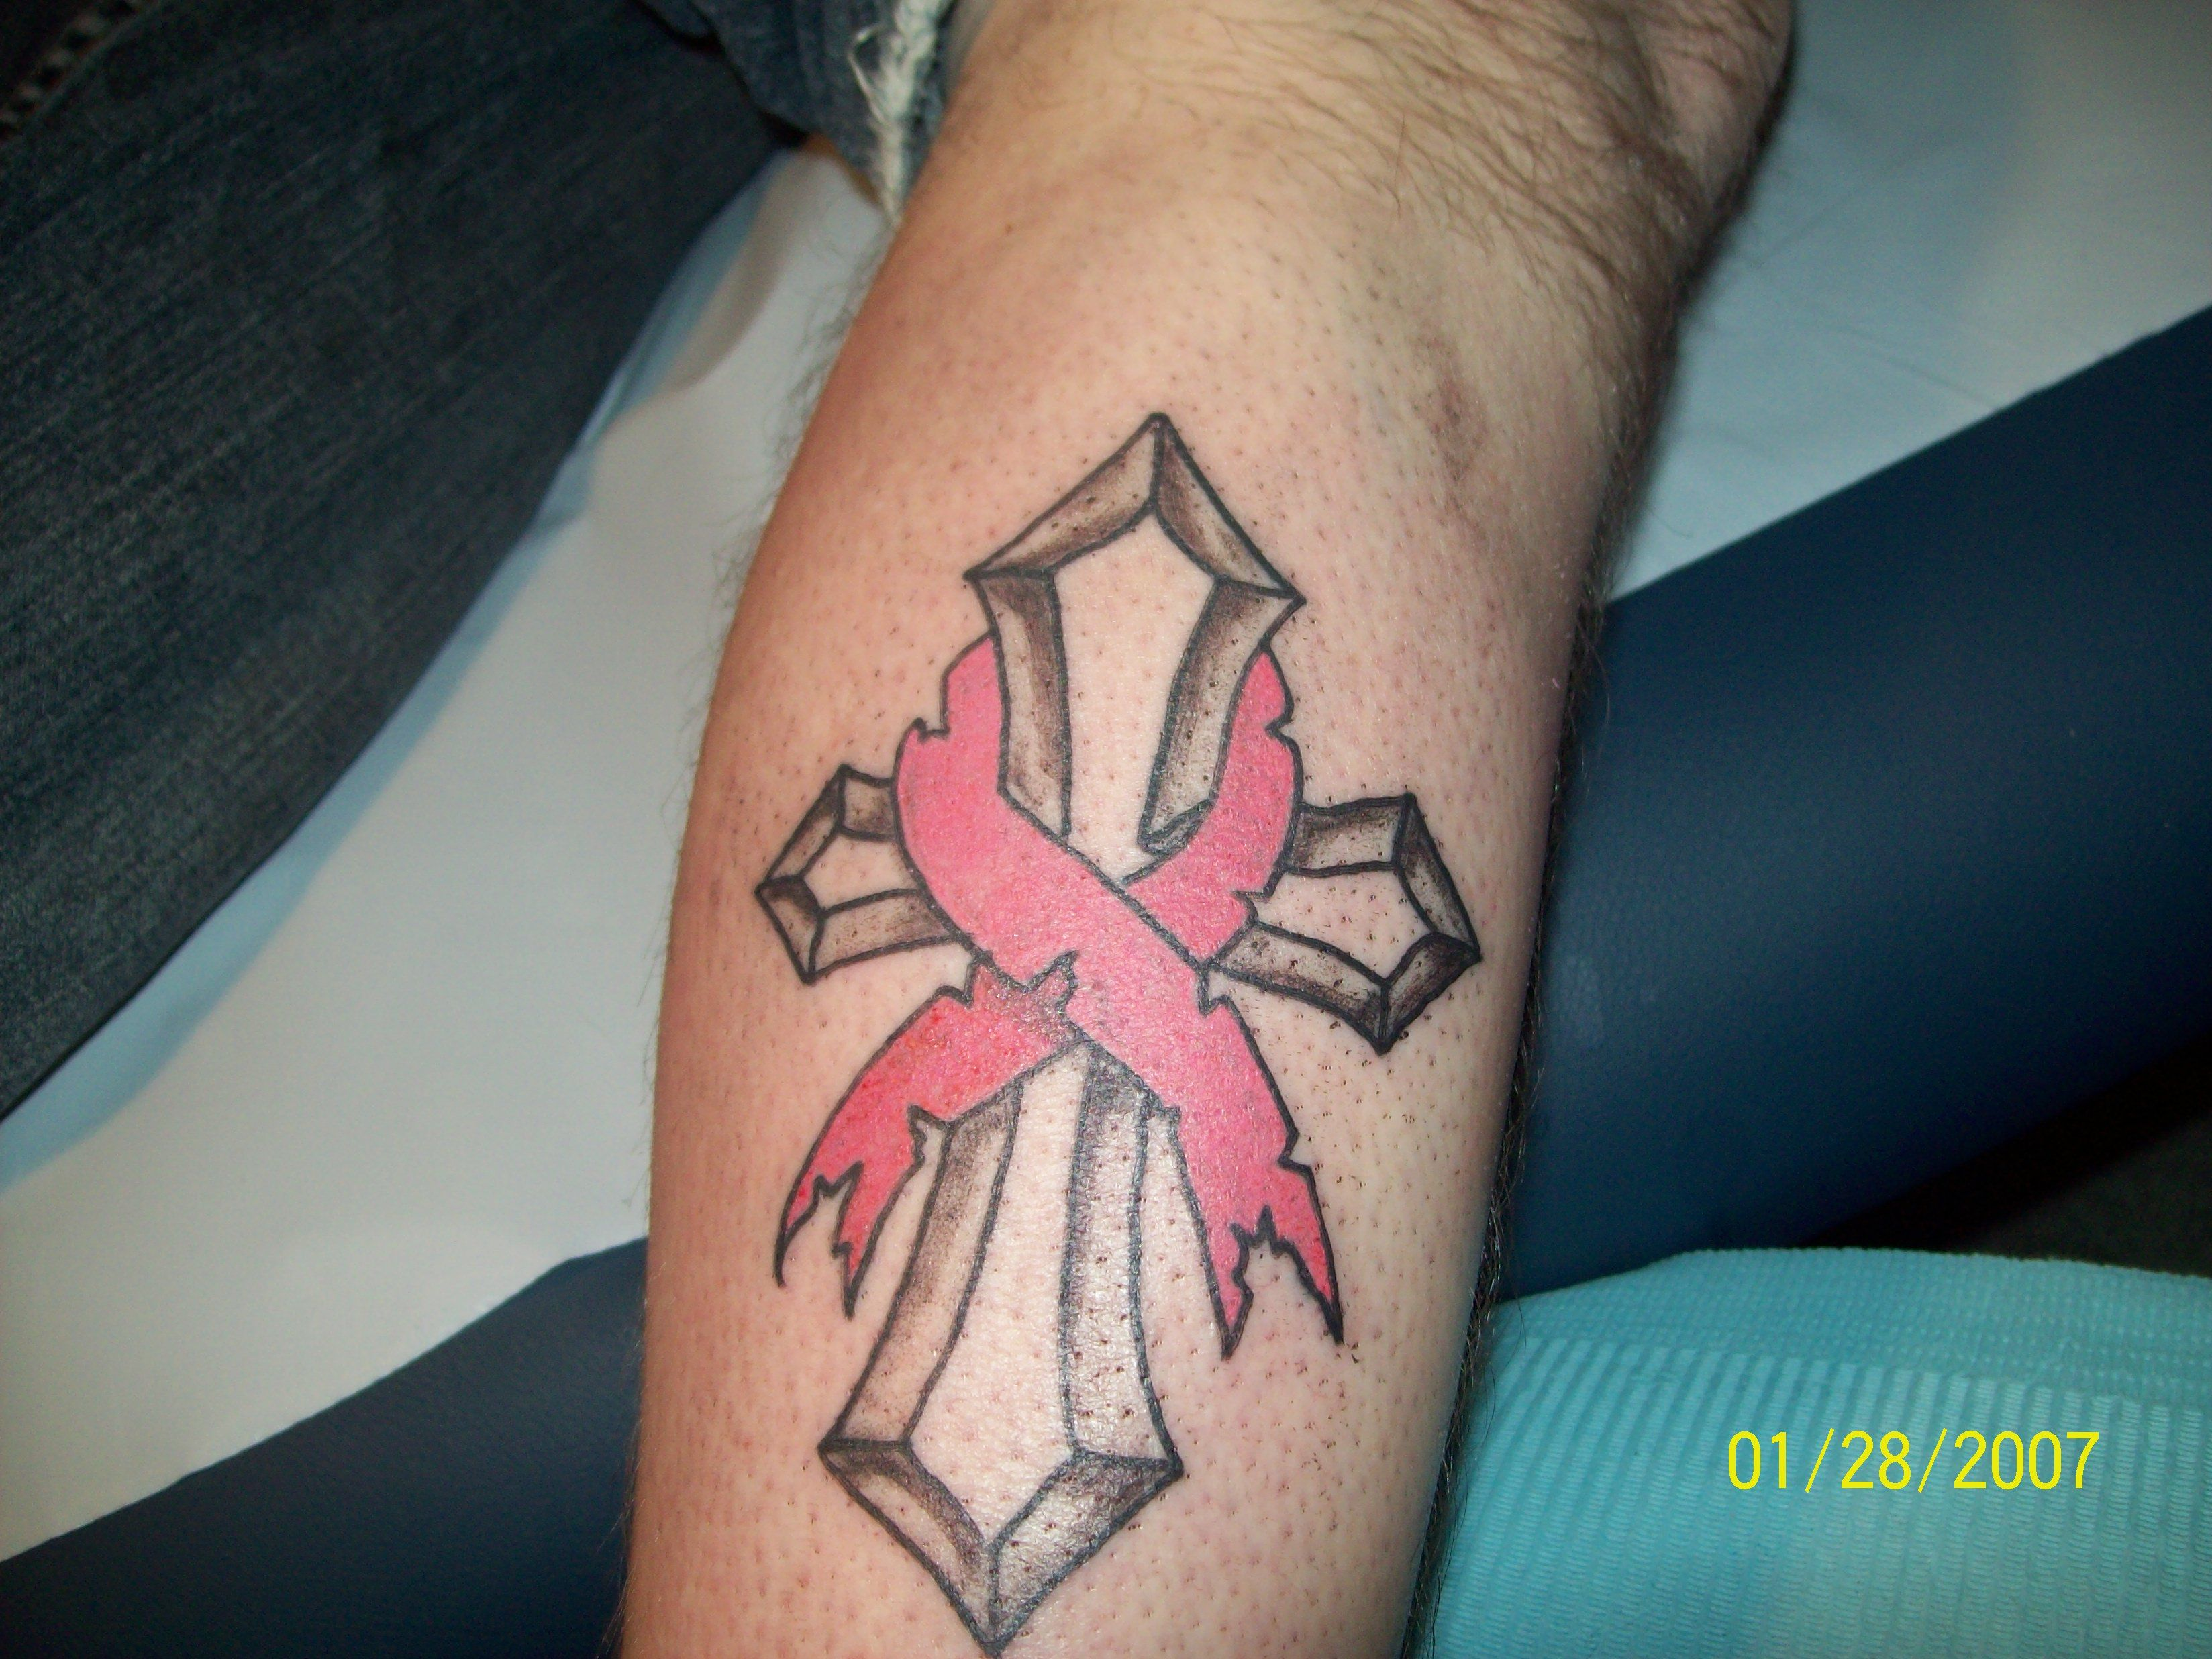 Pages Cancer Ribbon Cross Tattoos I14 Free Download Tattoo Wallpaper